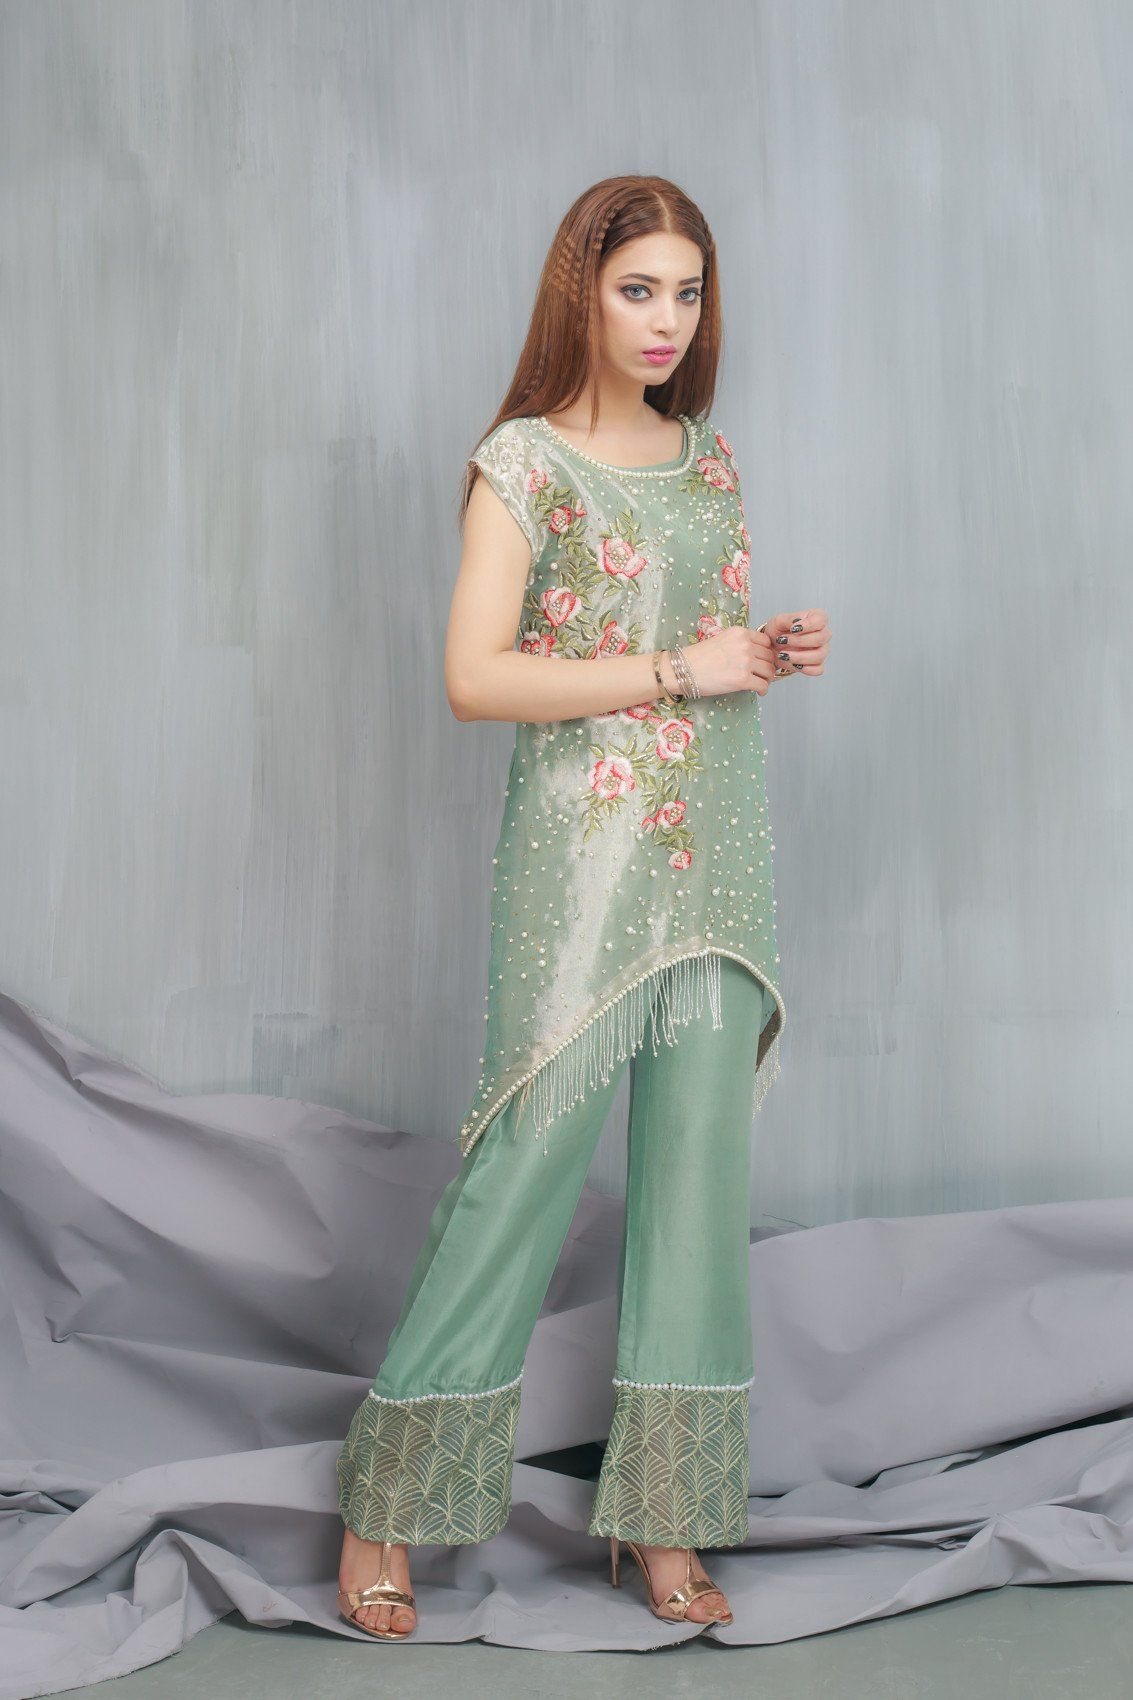 Arial outfit clothes fashion pinterest eid collection eid and ss